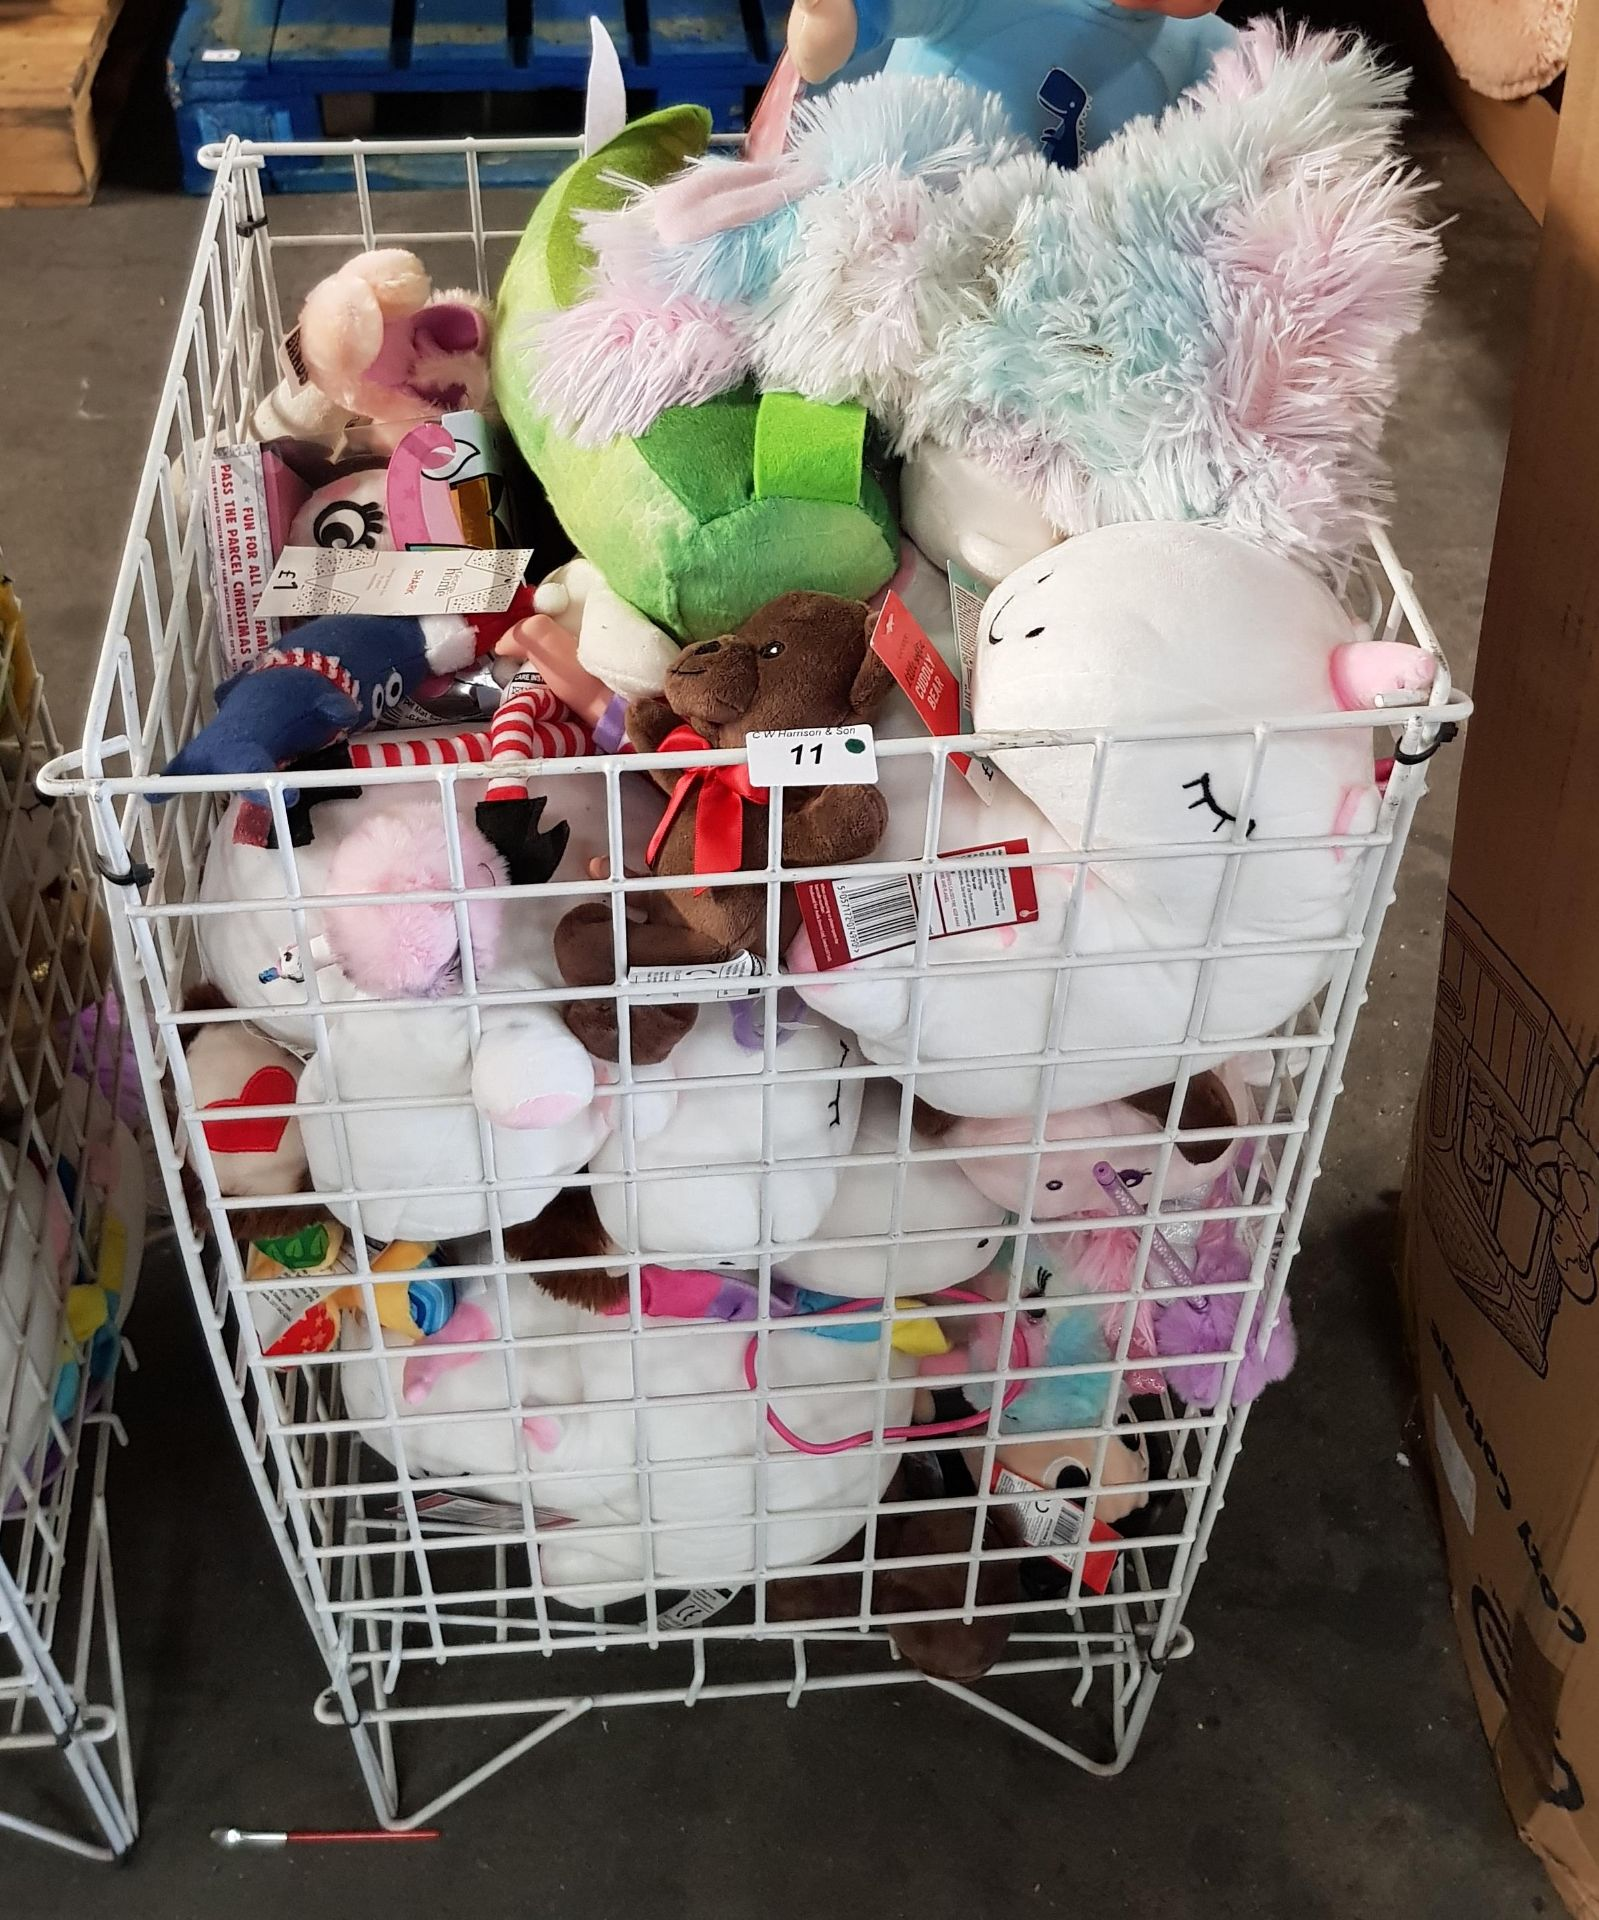 Lot 11 - CONTENTS OF CAGE - MIXED SOFT TOYS